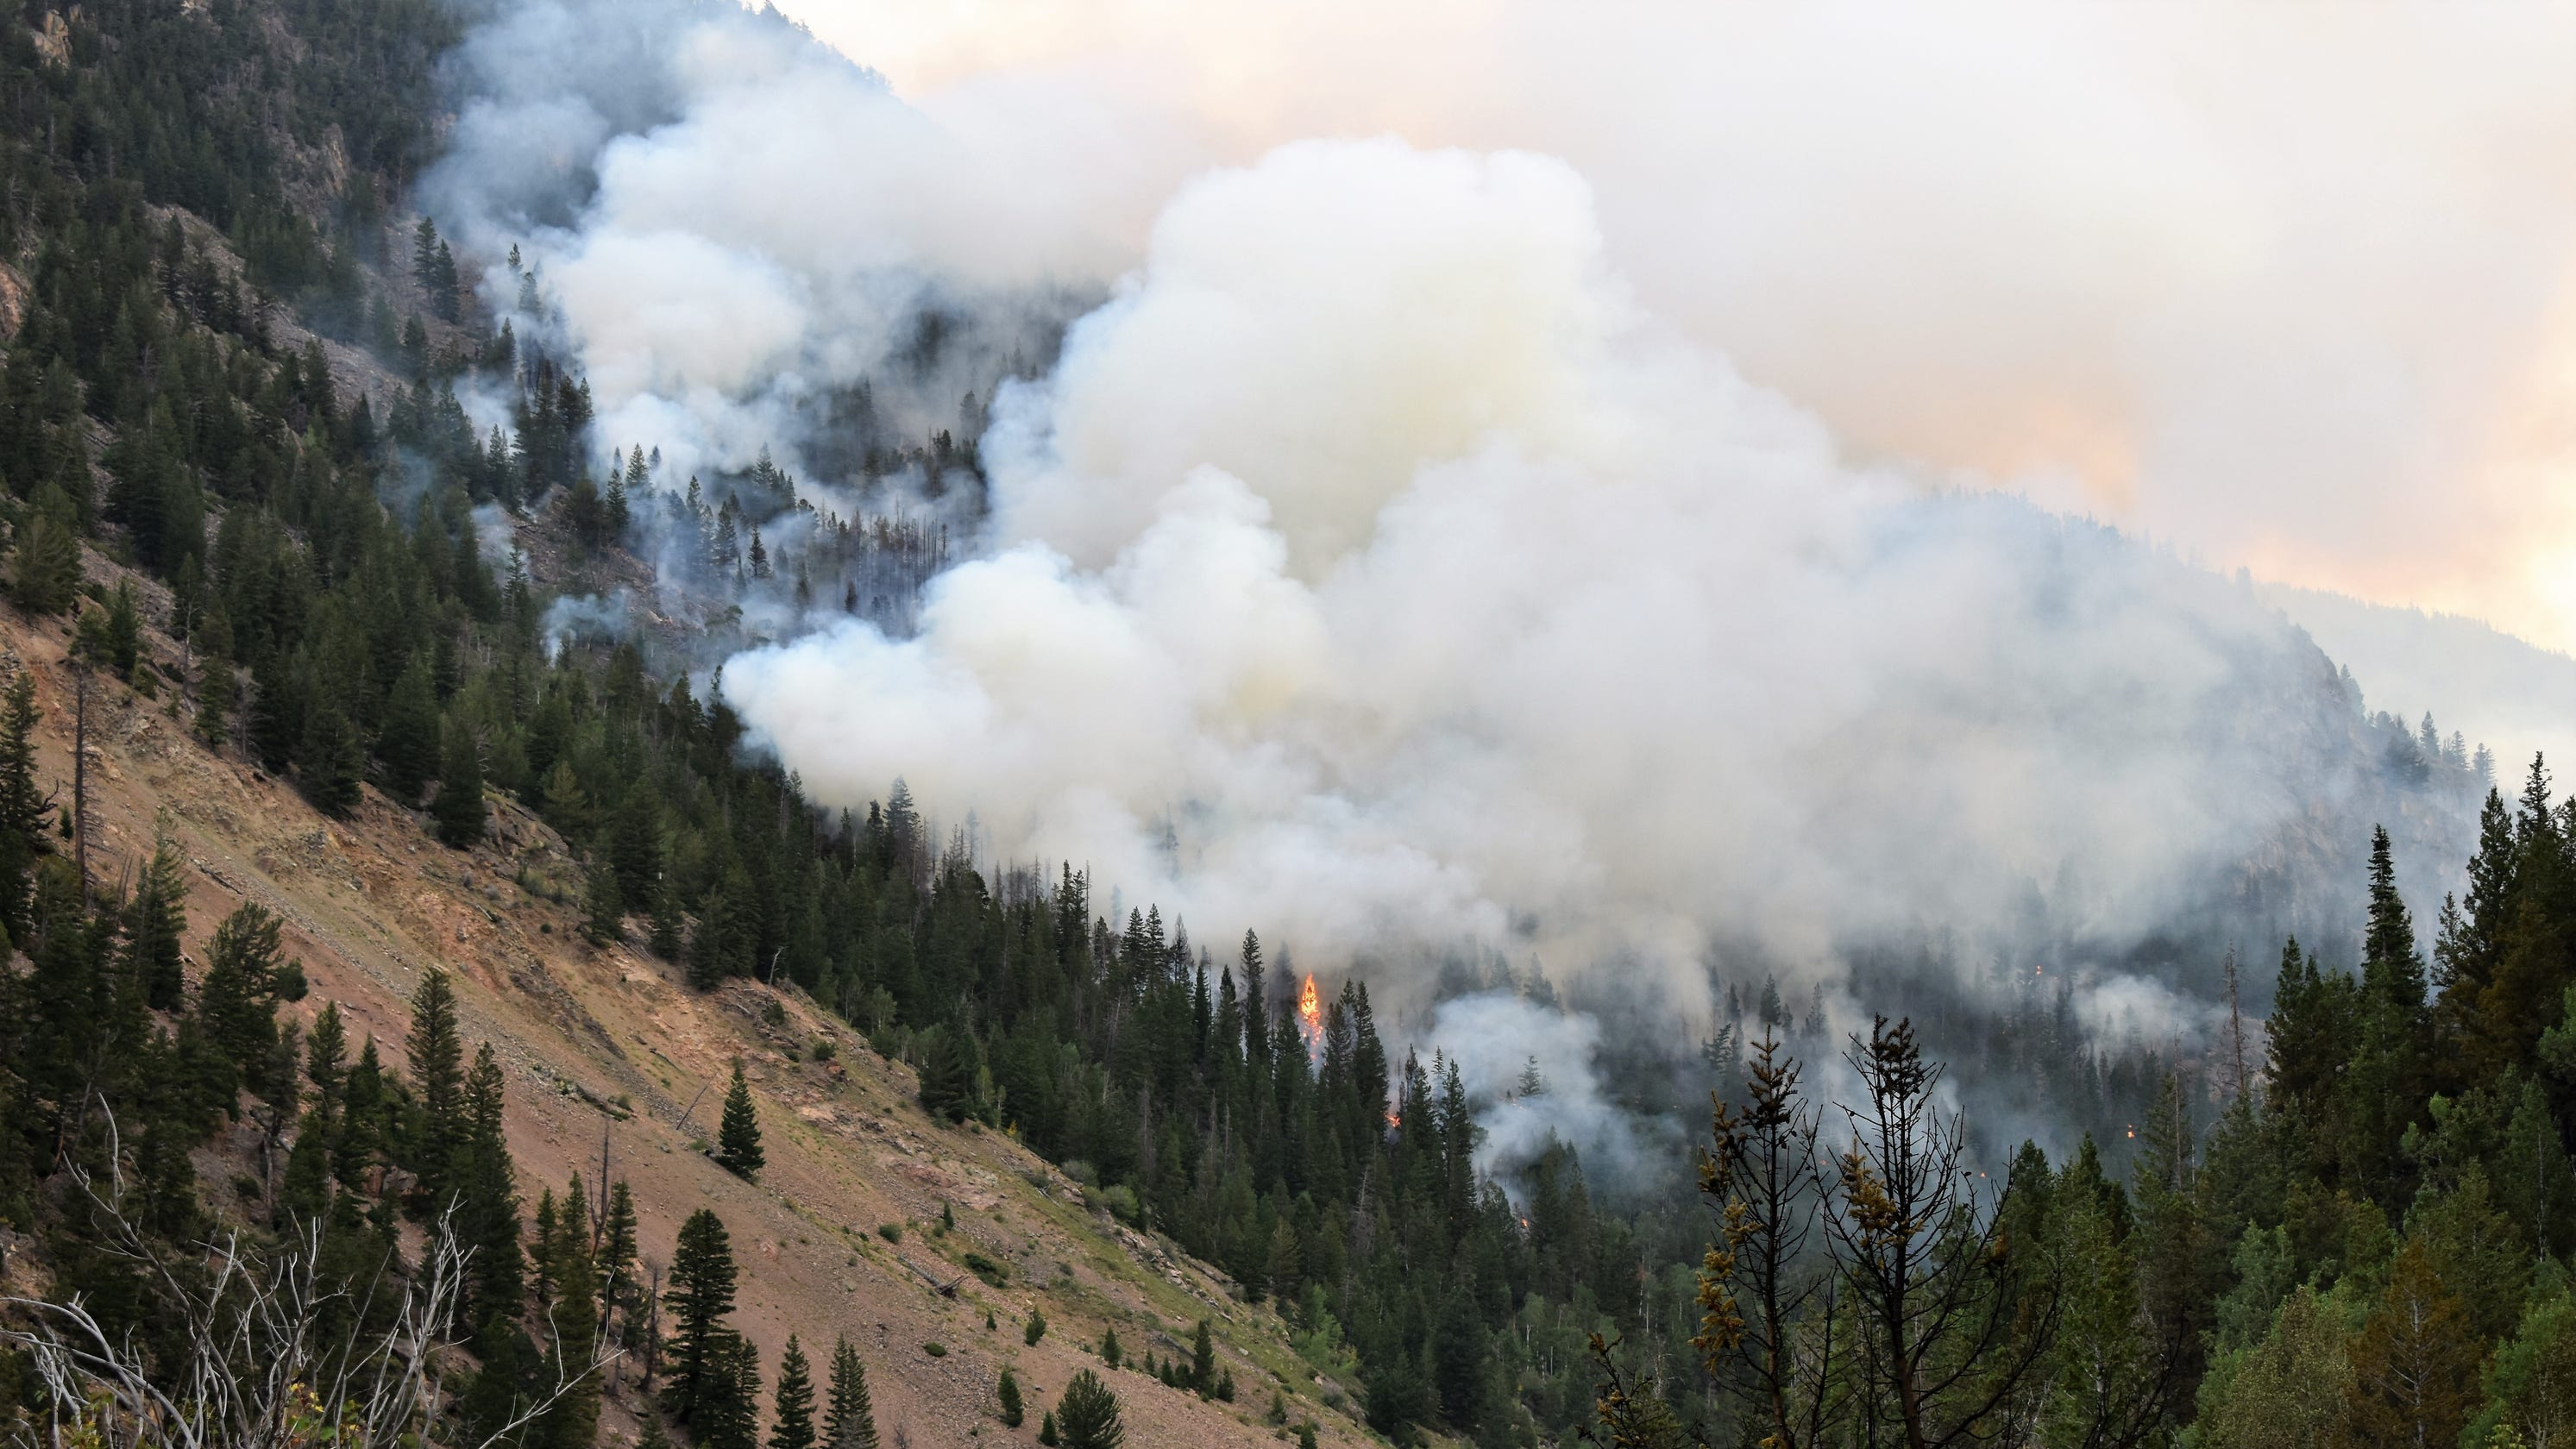 Cameron Peak Fire size remains unchanged, thunderstorms, dry lightning possible this weekend